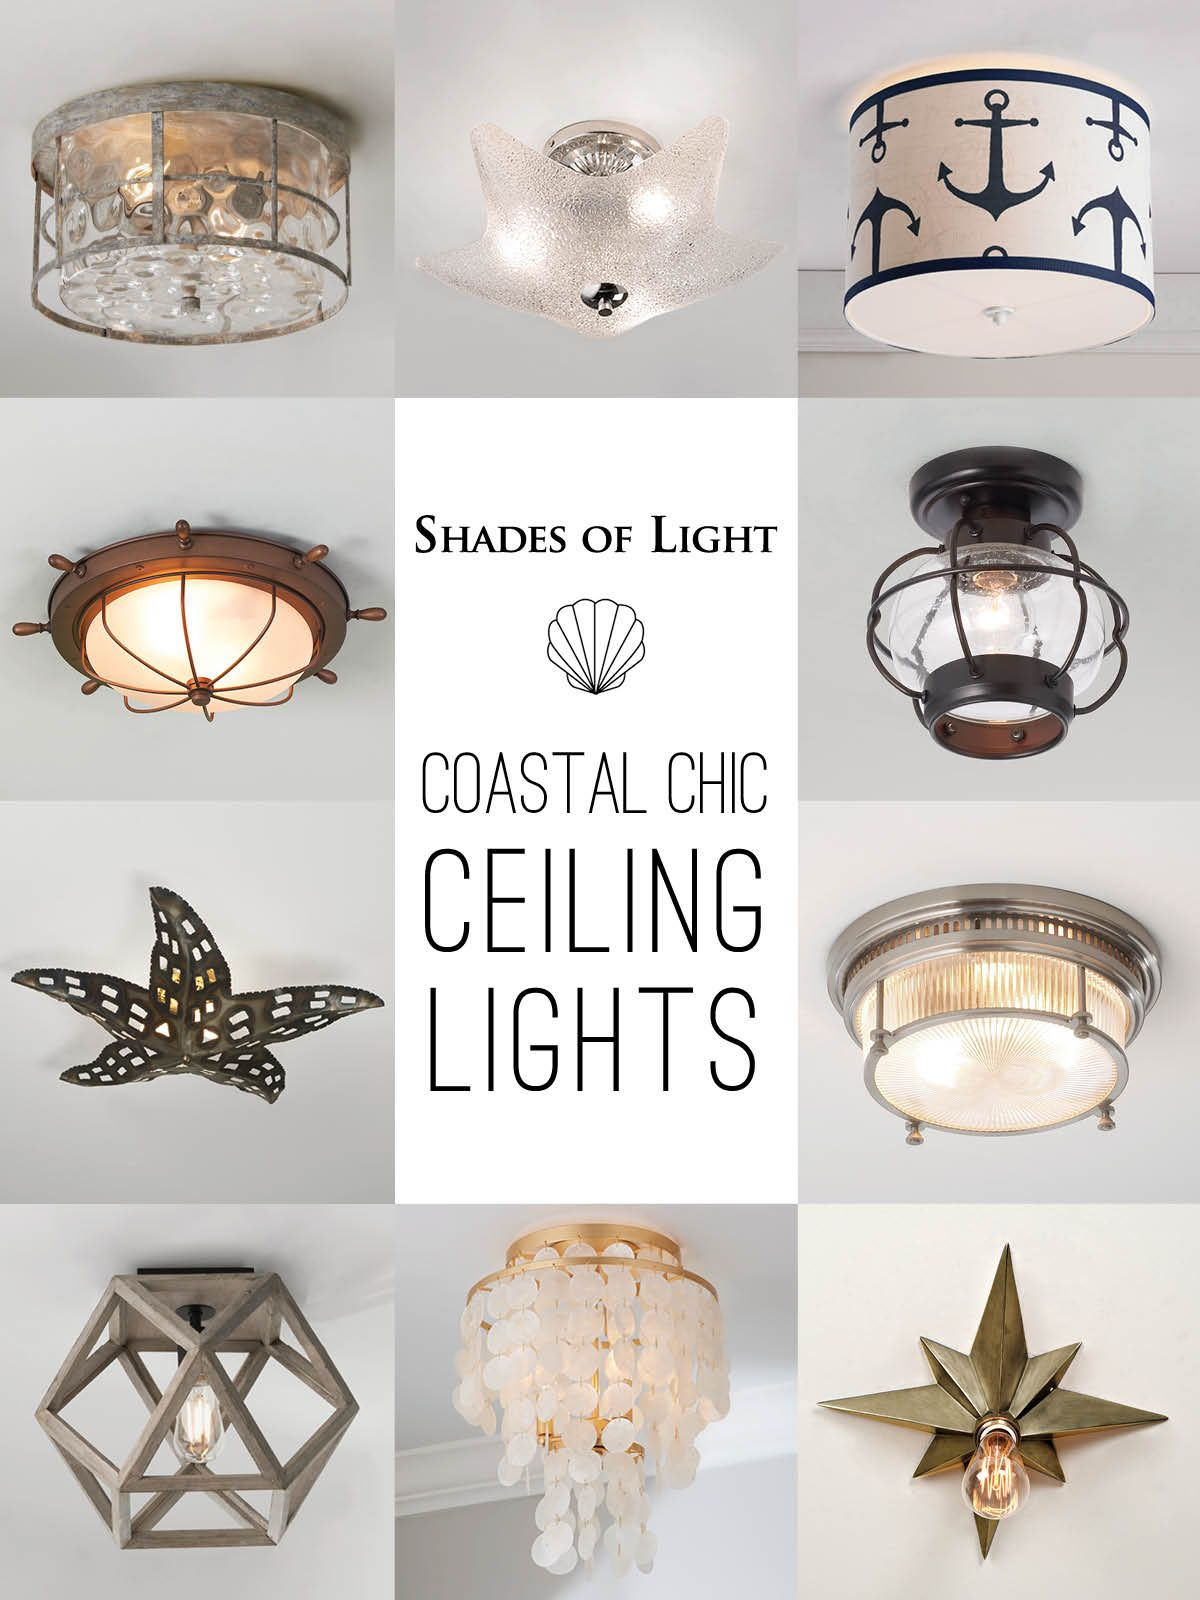 Coastal Chic Ceiling Lights Target Home Decor Rustic Beach Decor Home Decor Pictures